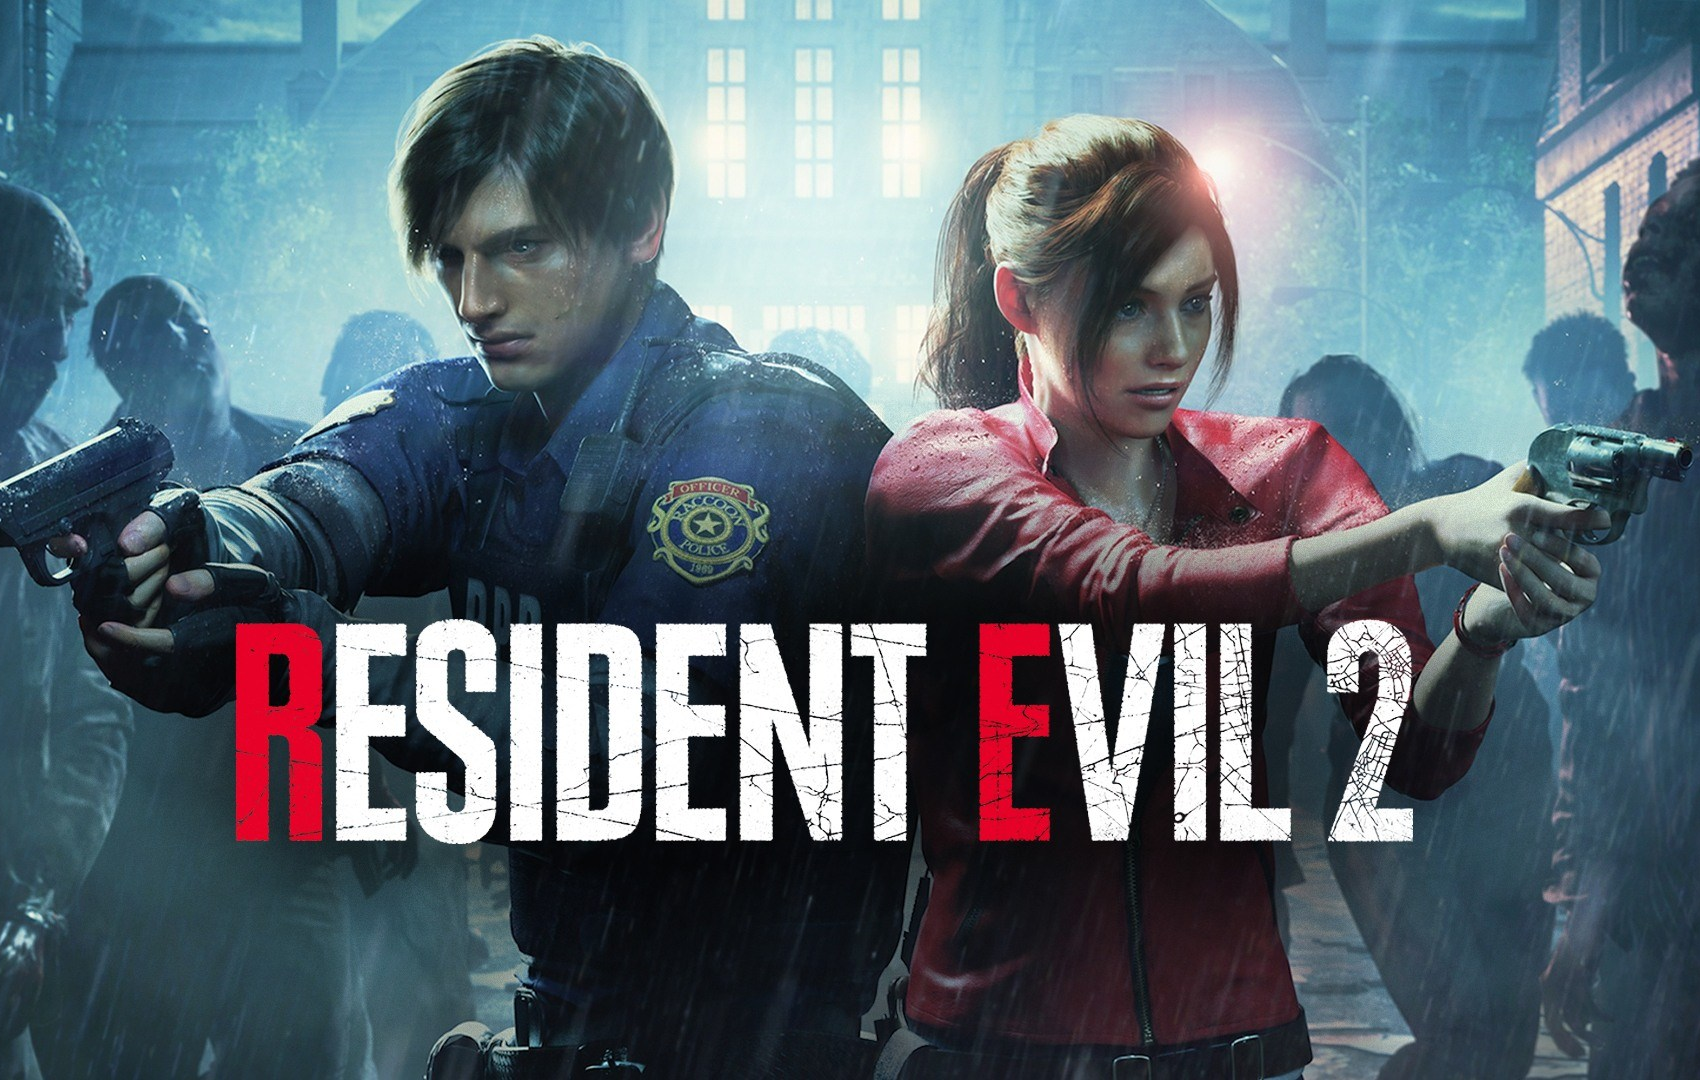 [FPS Benchmarks] Resident Evil 2 on NVIDIA GeForce GTX 1650 [40W and 50W] – both are good but the 50W version can show 71 FPS on Max settings